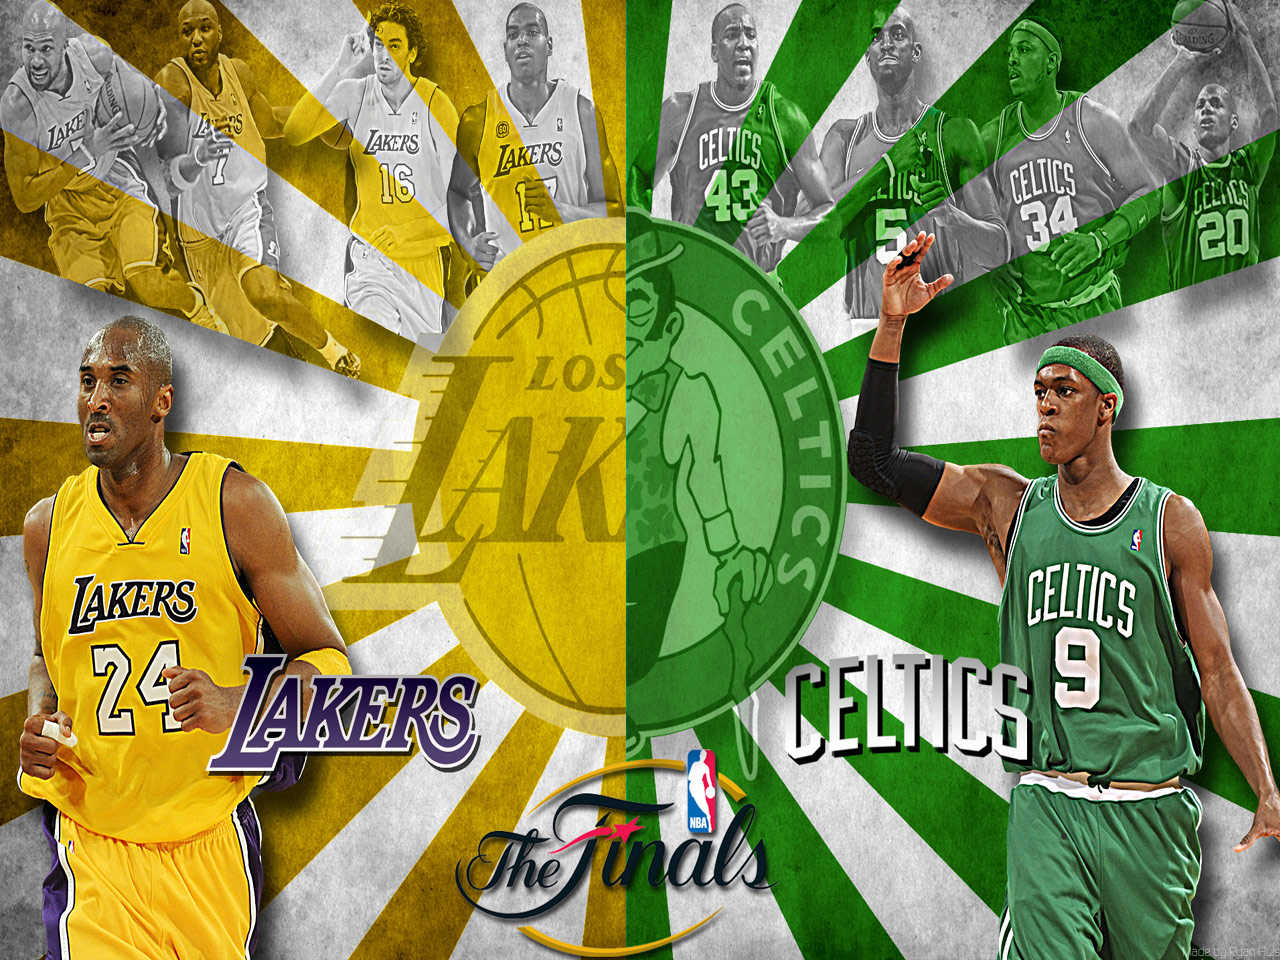 http://4.bp.blogspot.com/__evv34uhCME/TBqR1MxL1bI/AAAAAAAACiI/QmSHxUQ3n7I/s1600/NBA-Finals-2010-Celtics-VS-Lakers-Wallpaper.jpg